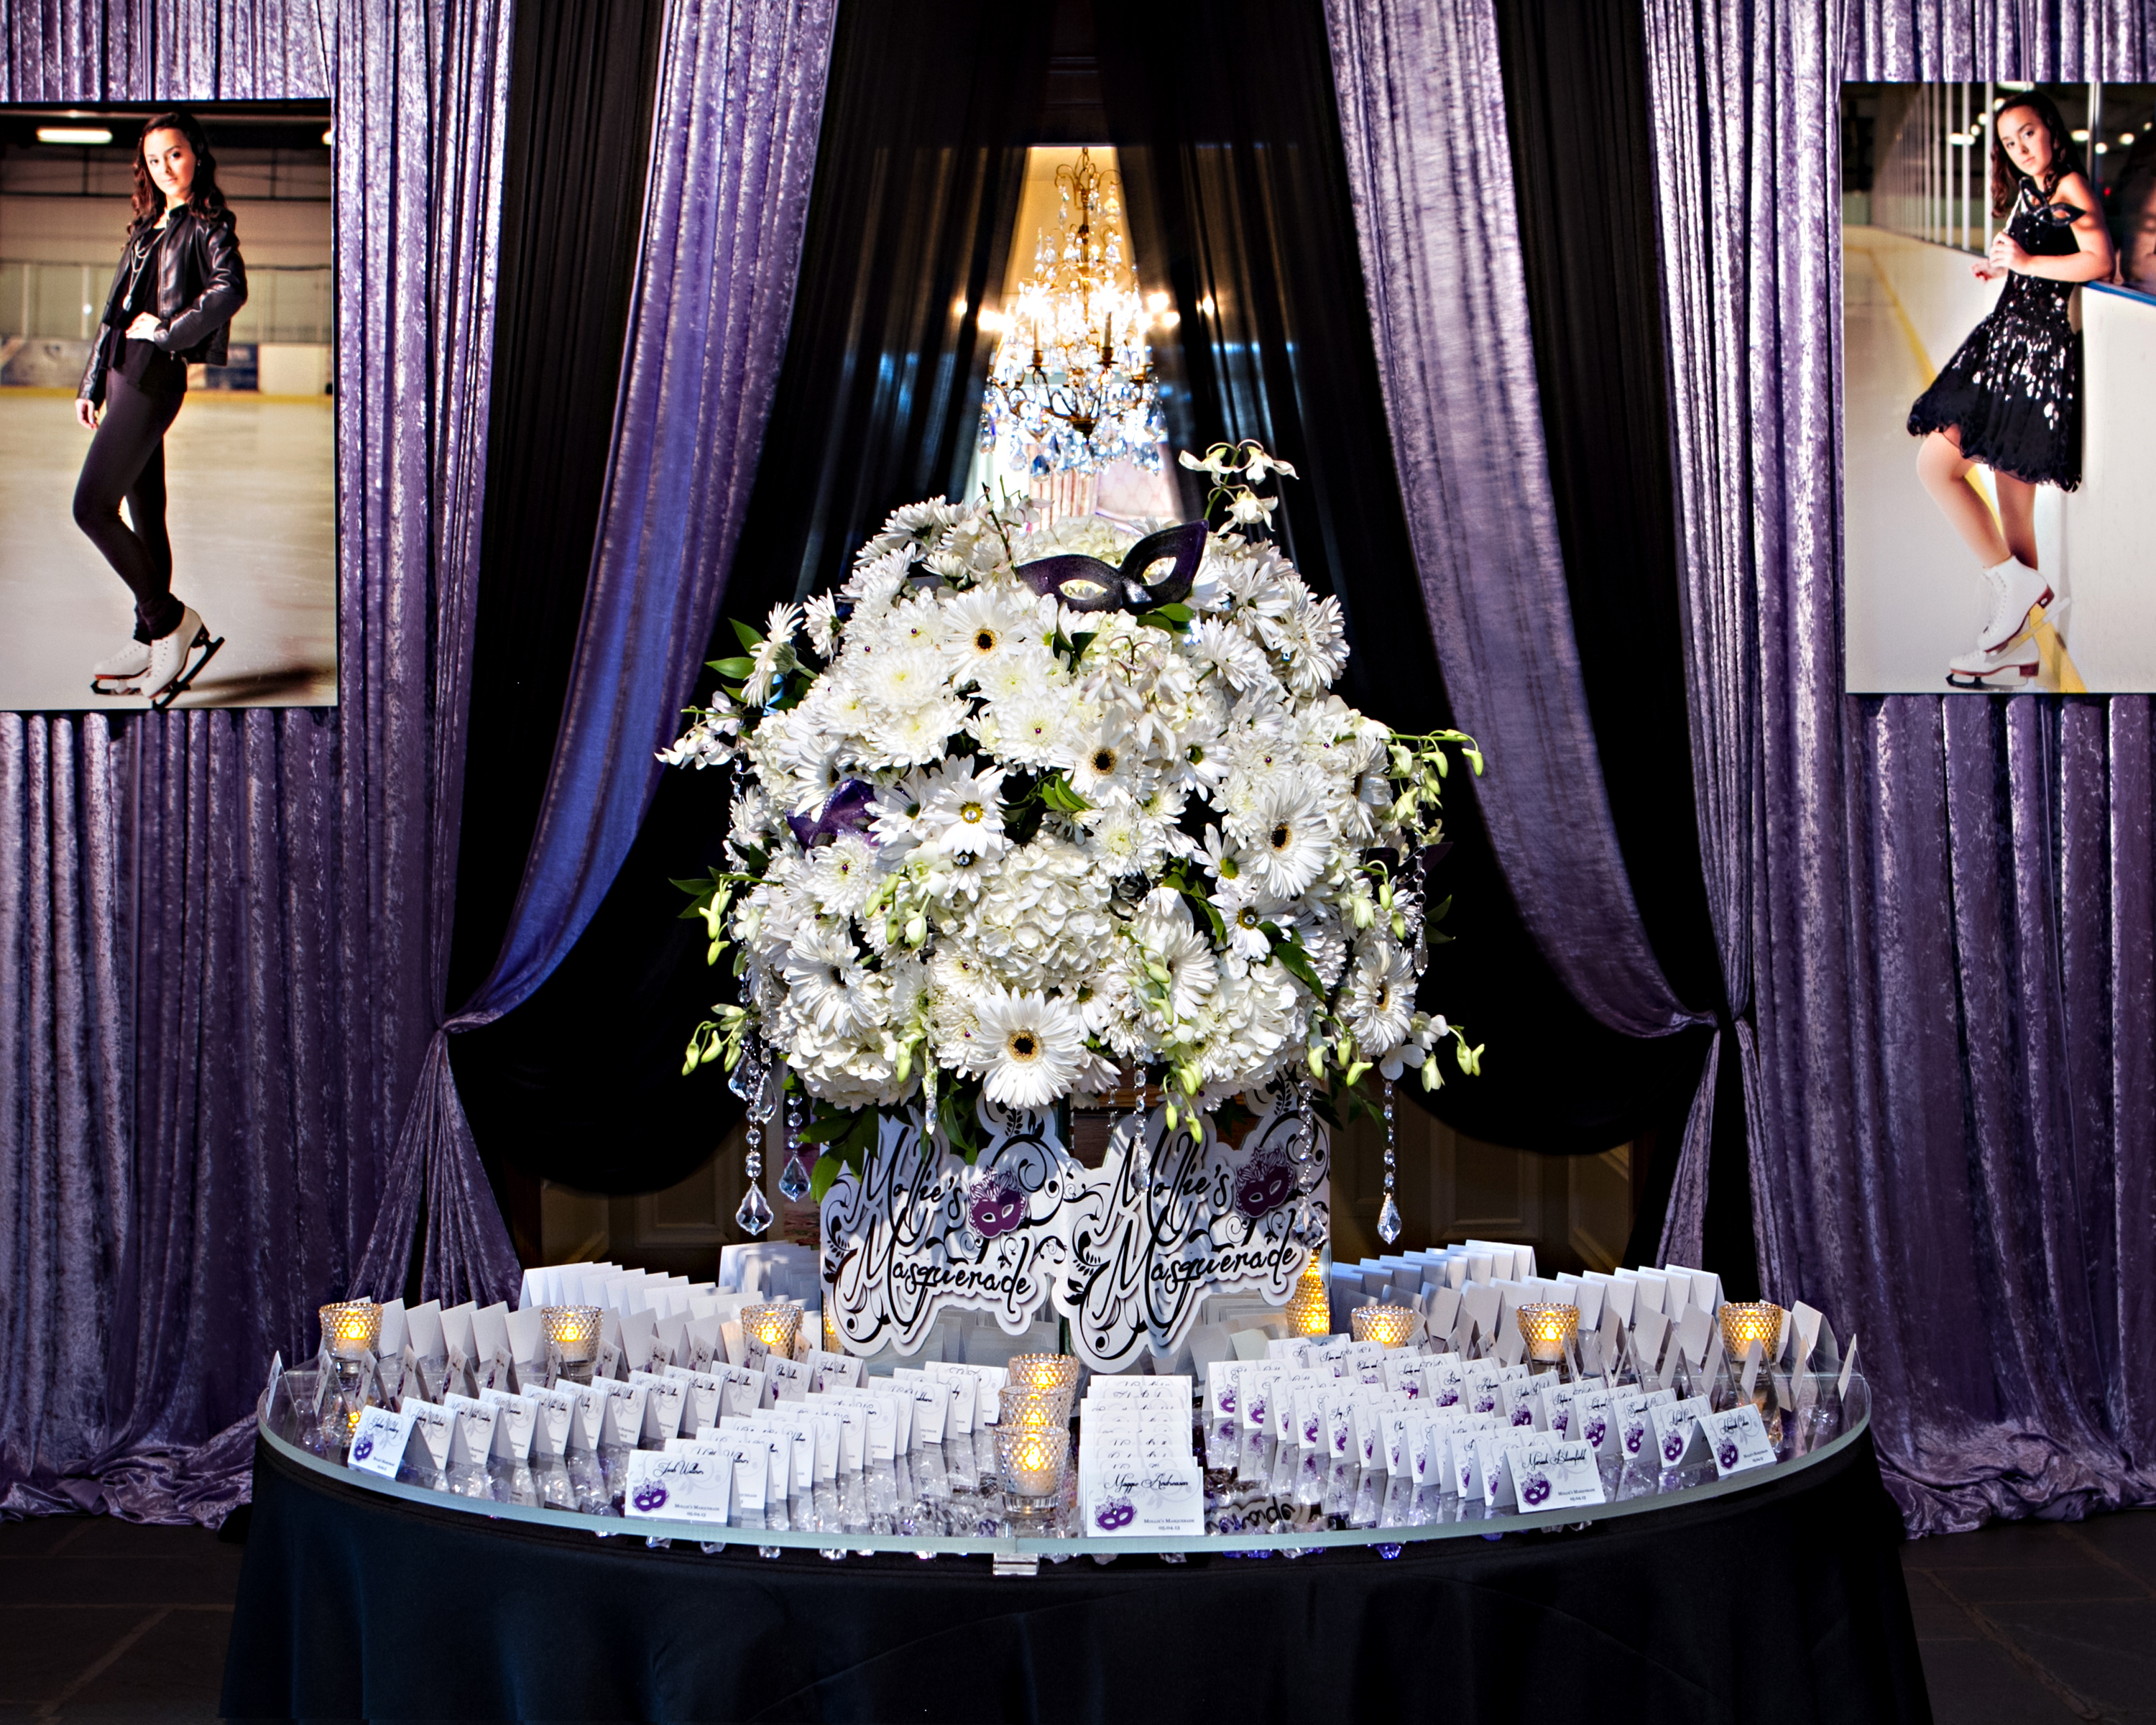 Posted by Epic Events - A Design/Decor/Floral professional